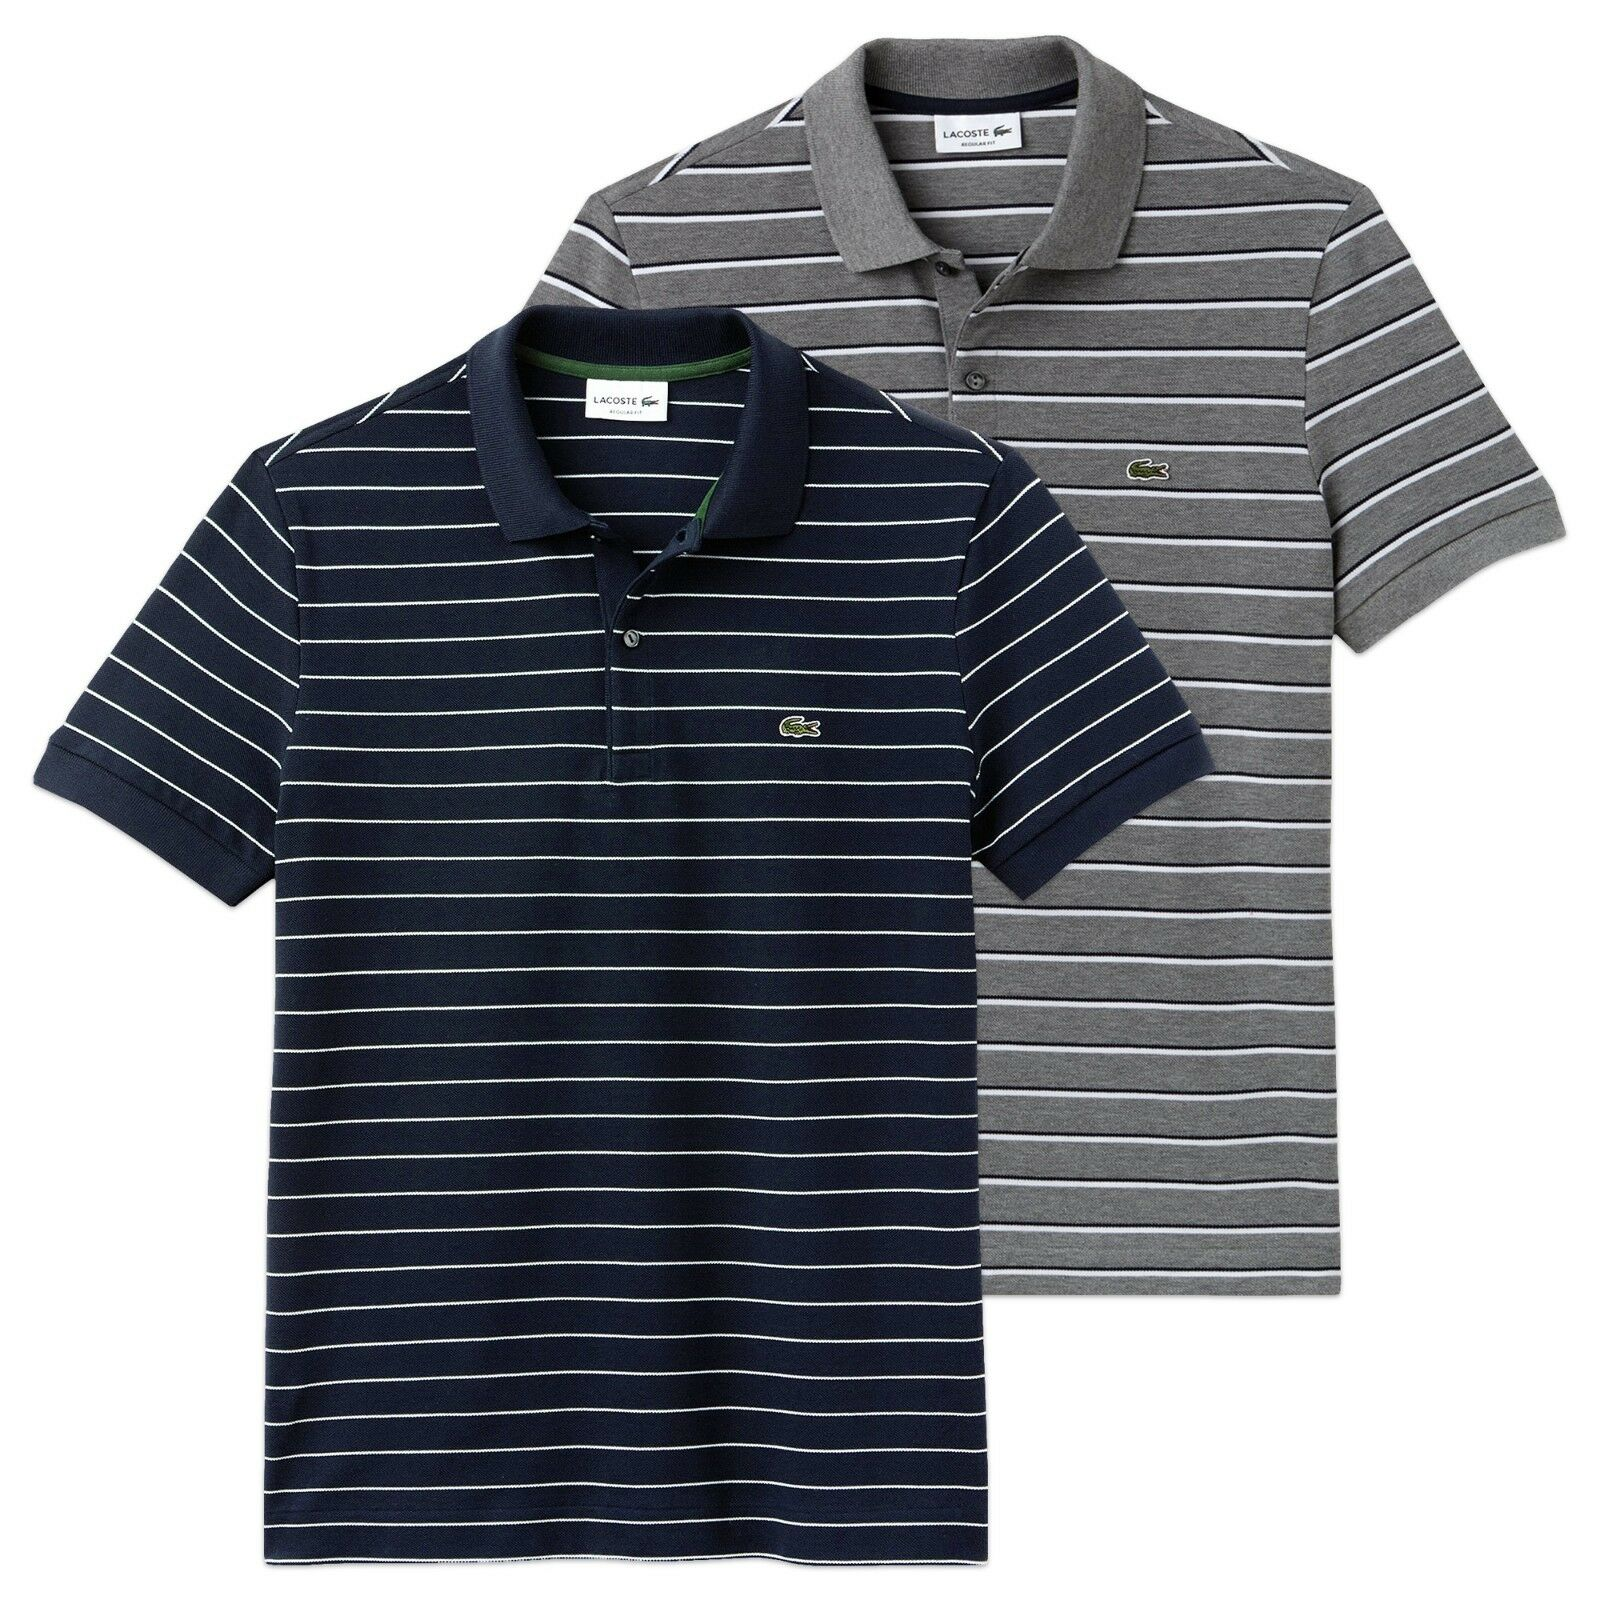 Lacoste Polo Shirt - Lacoste PH3105 Regular Fit Striped Pique Polo Shirt - BNWT